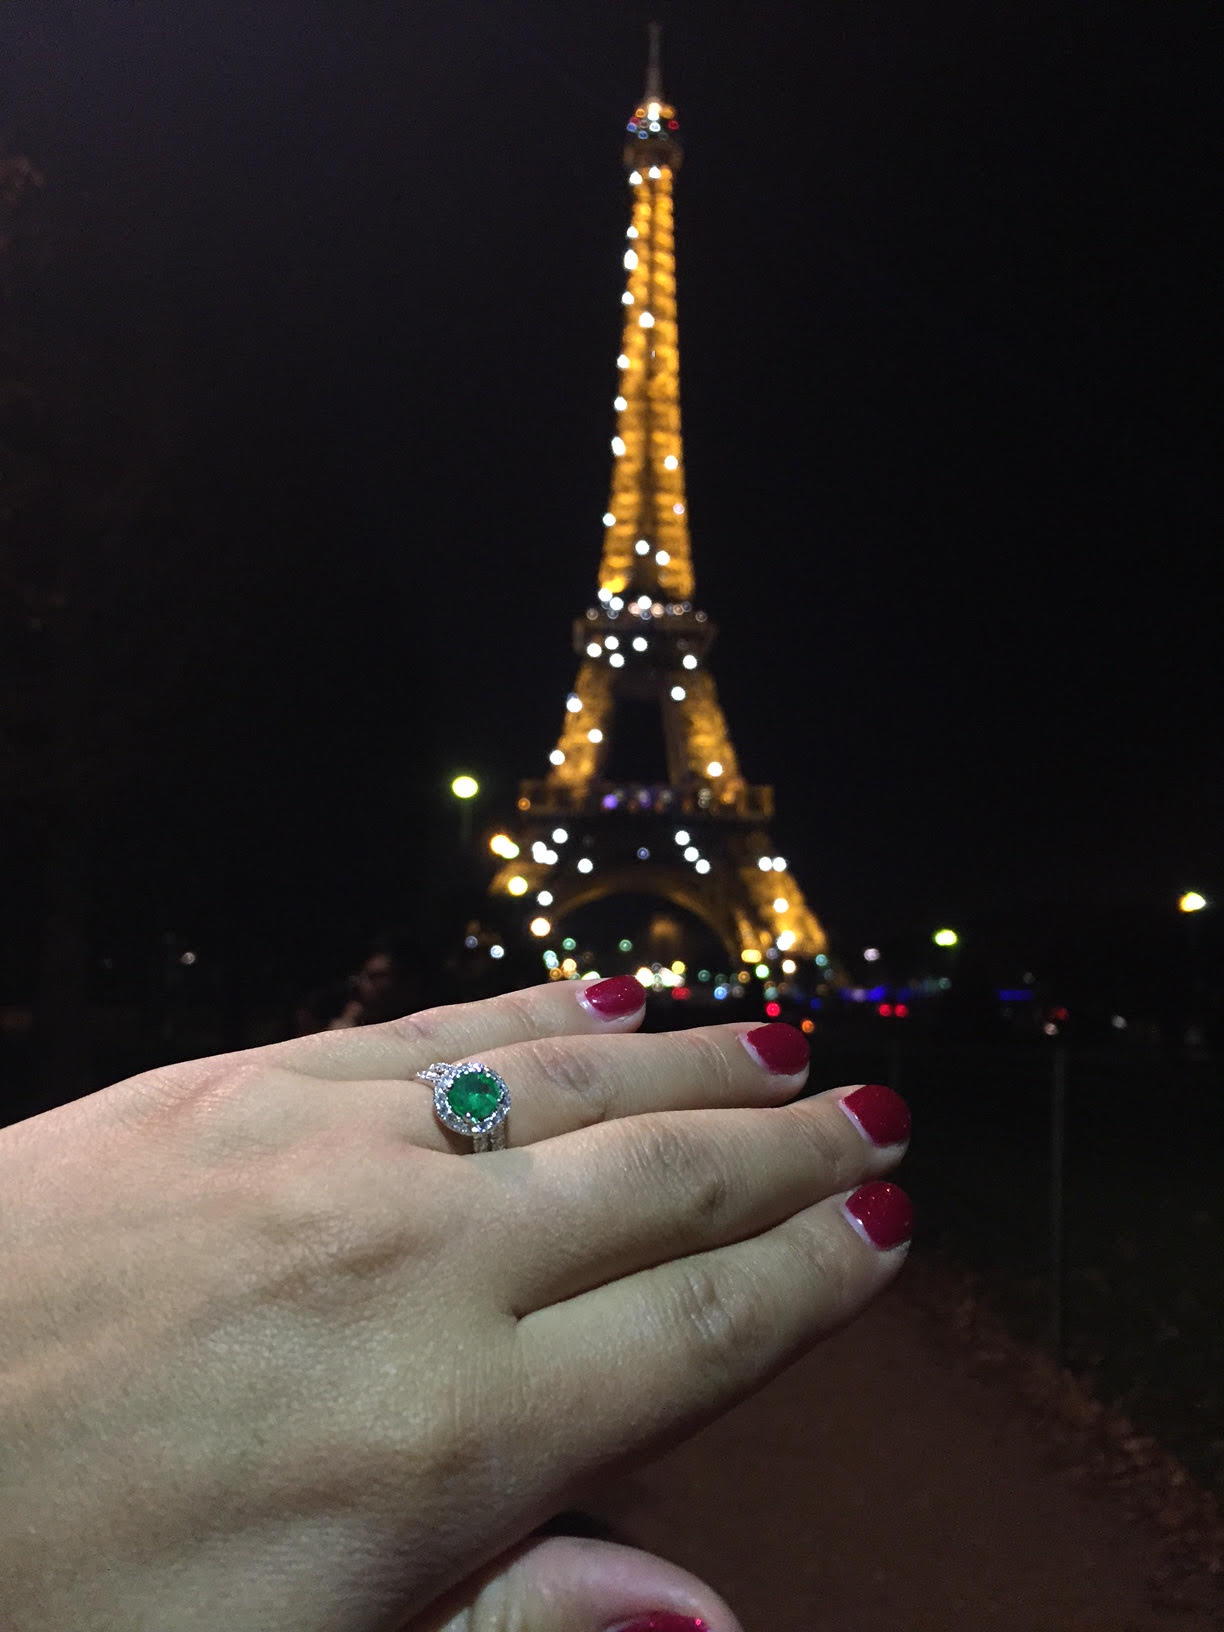 Emeral engagement ring